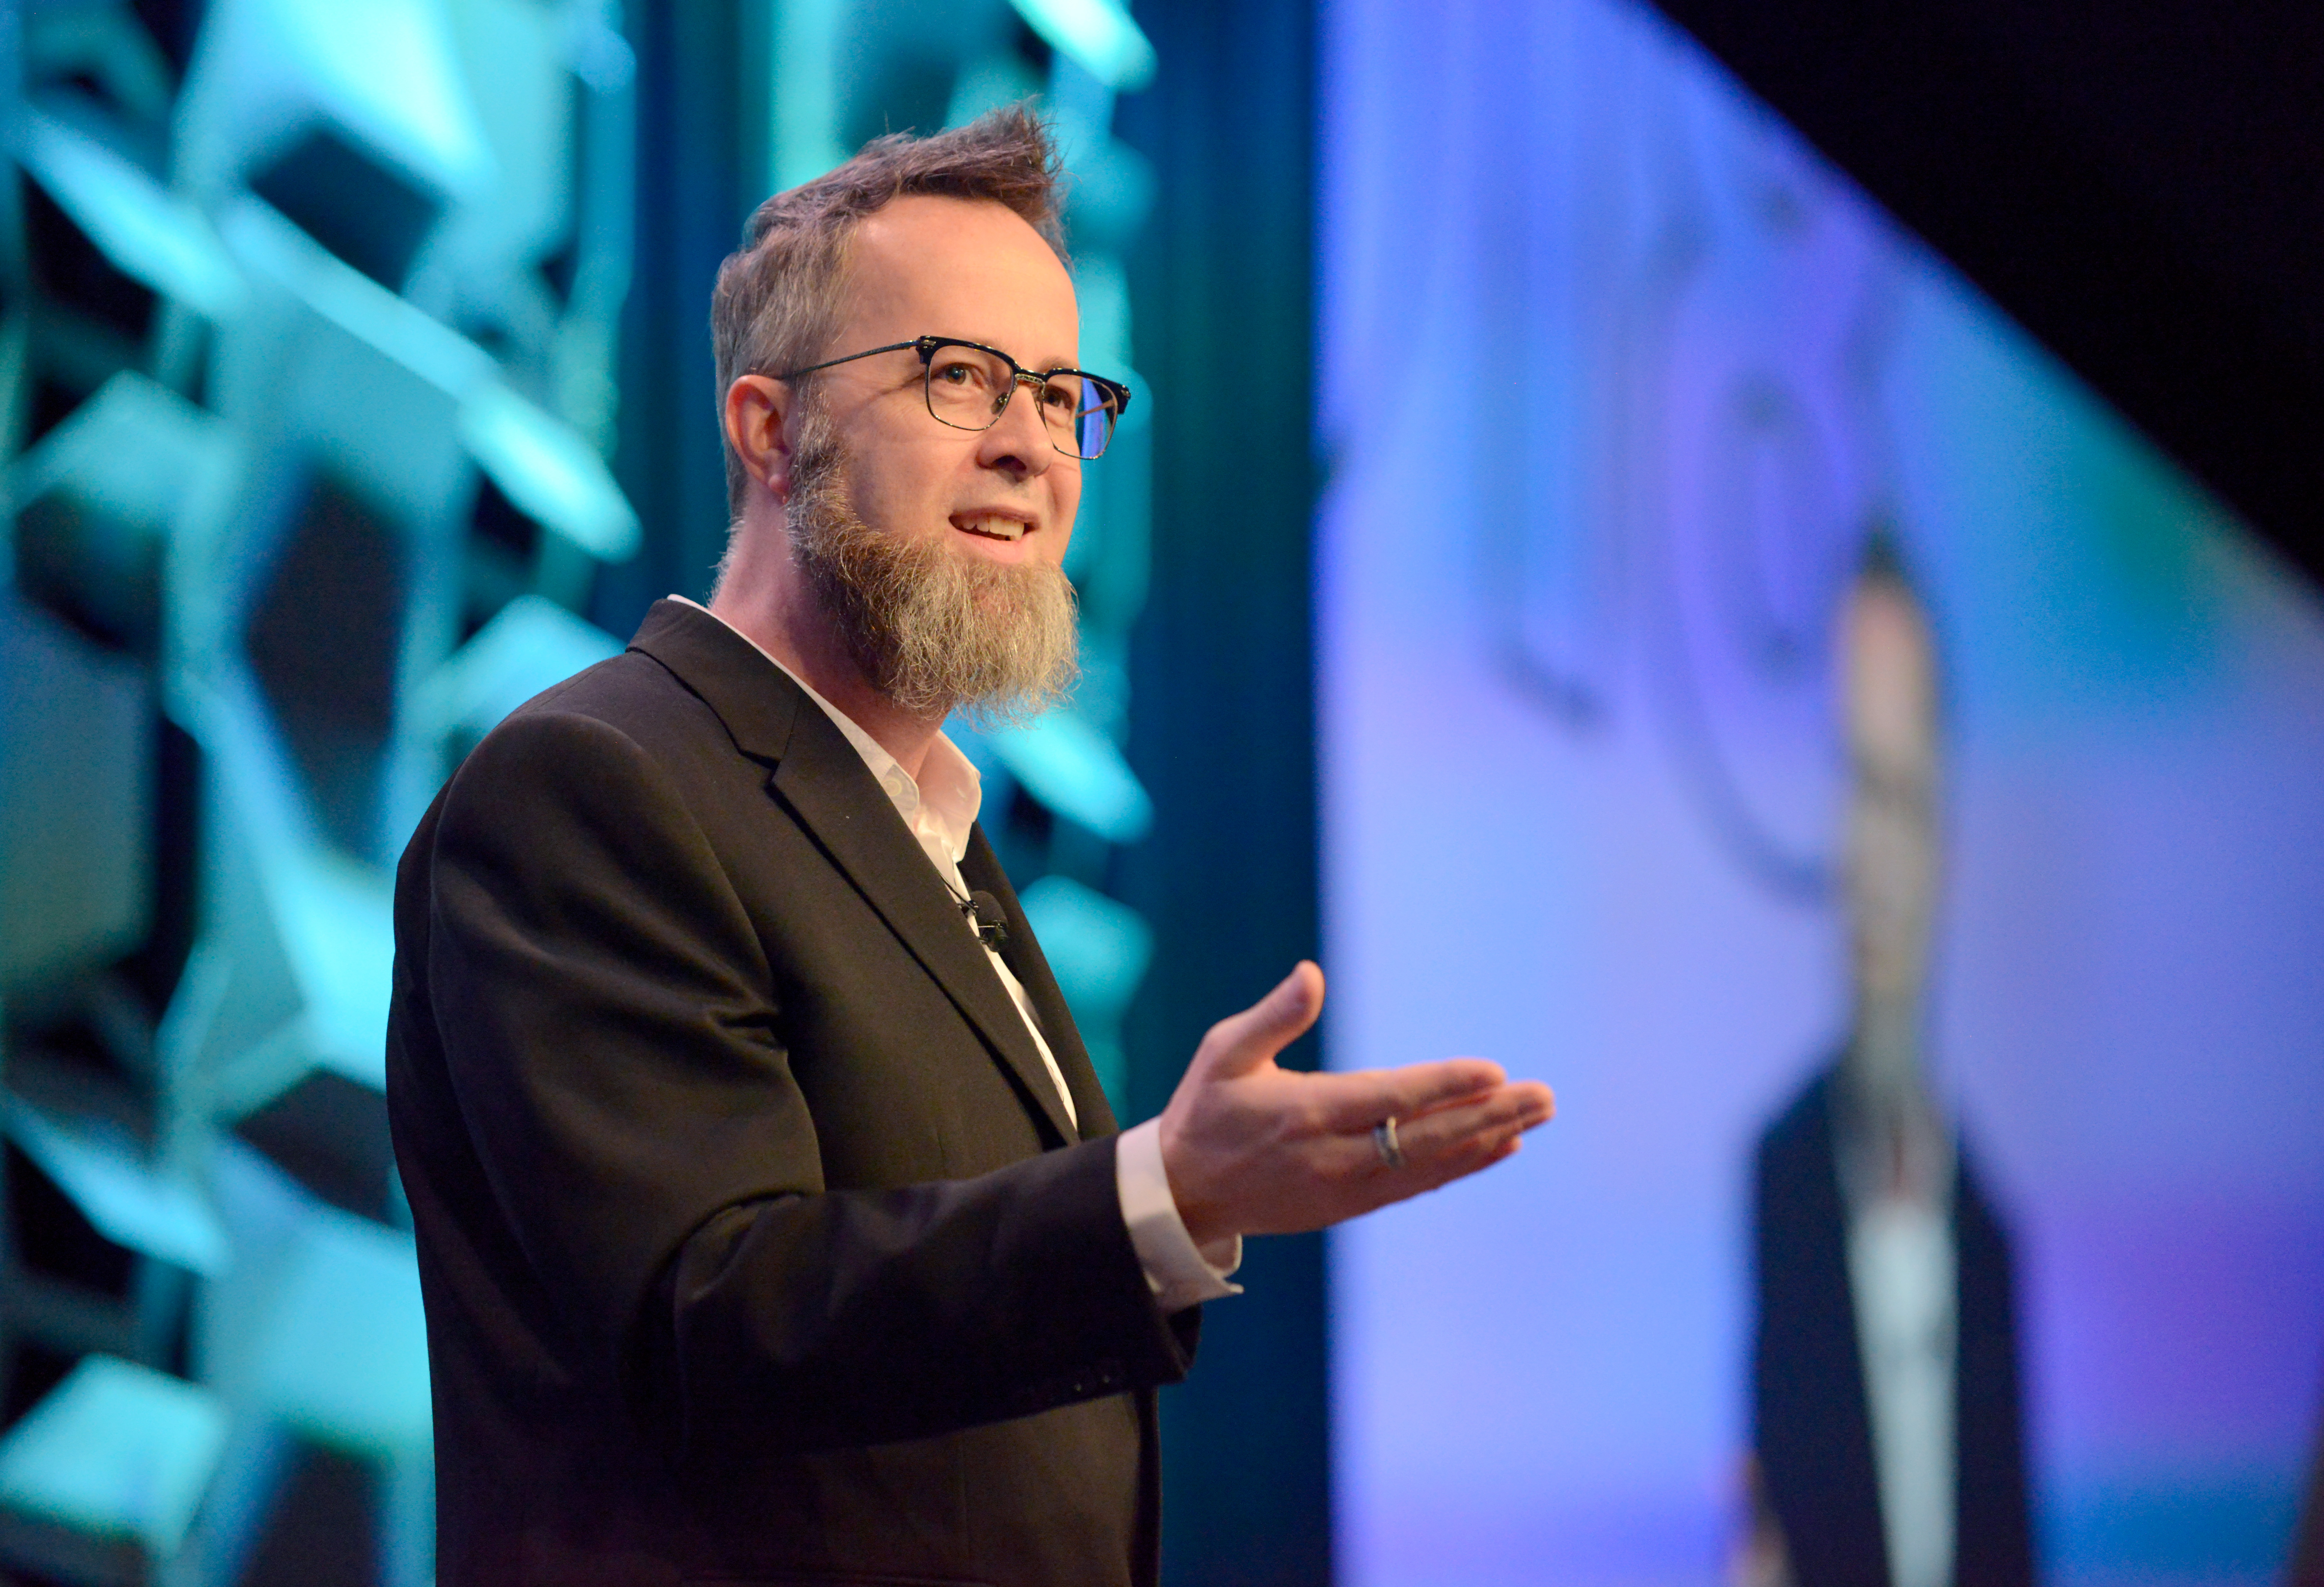 Convergence Keynote whurley | Photo by Nicola Gell/Getty Images